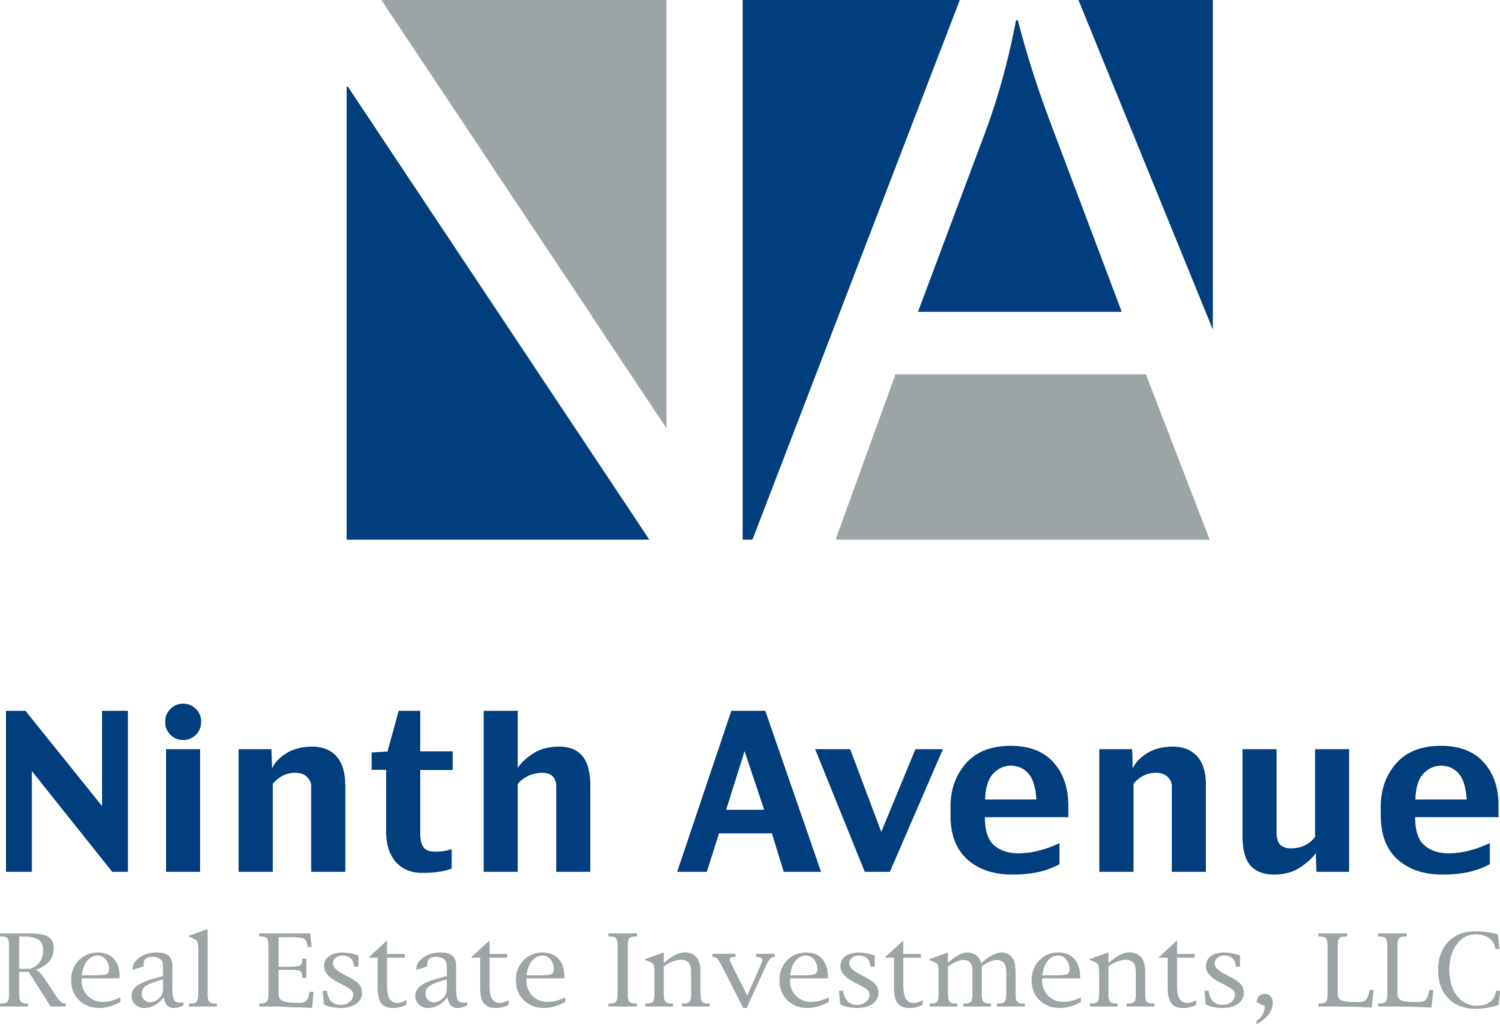 Ninth Avenue Real Estate